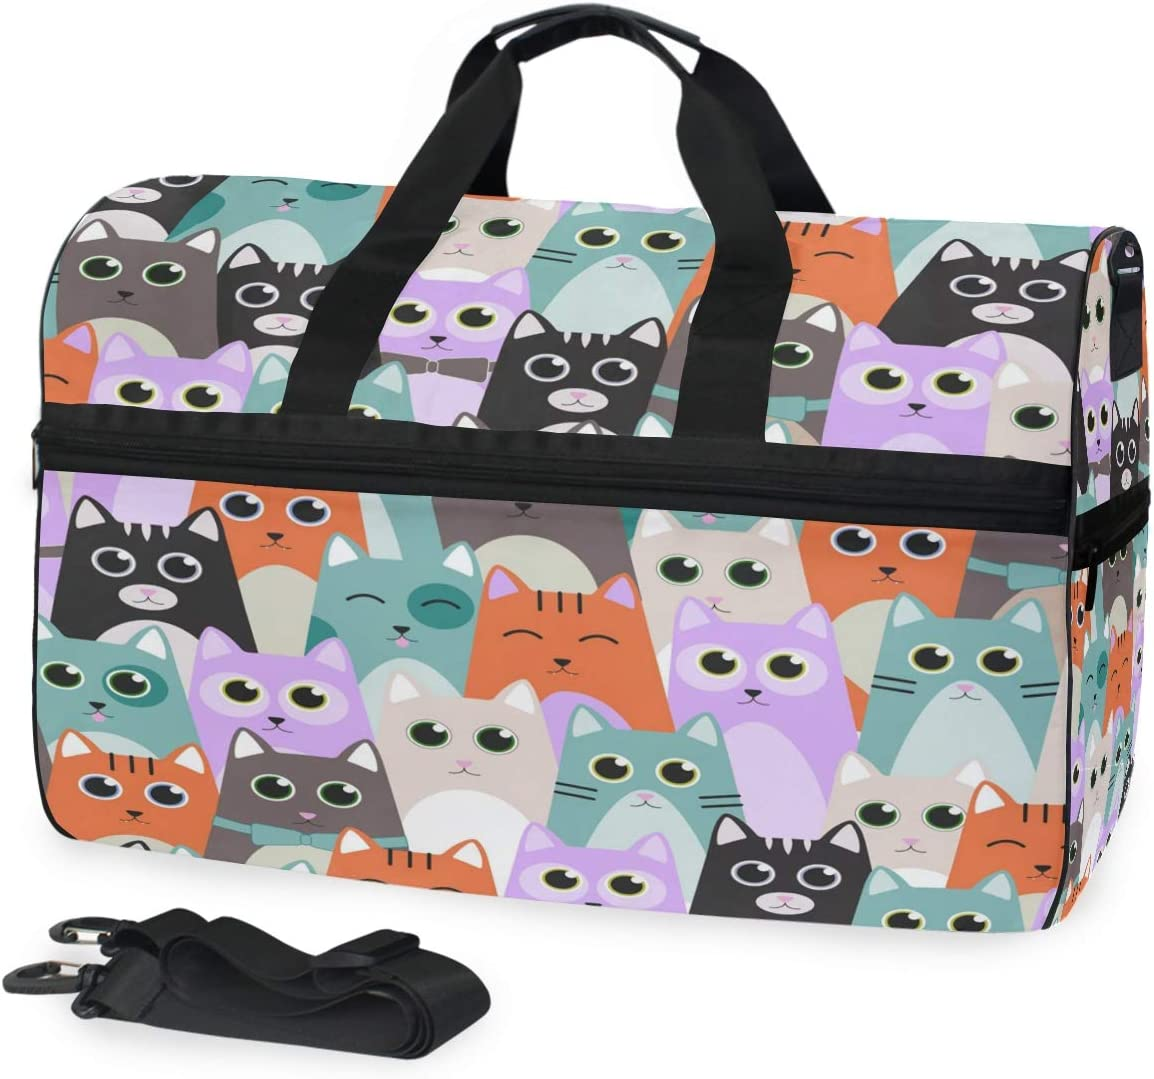 Cute Cats For Kids Sports Gym Bag with Shoes Compartment Travel Duffel Bag for Men and Women